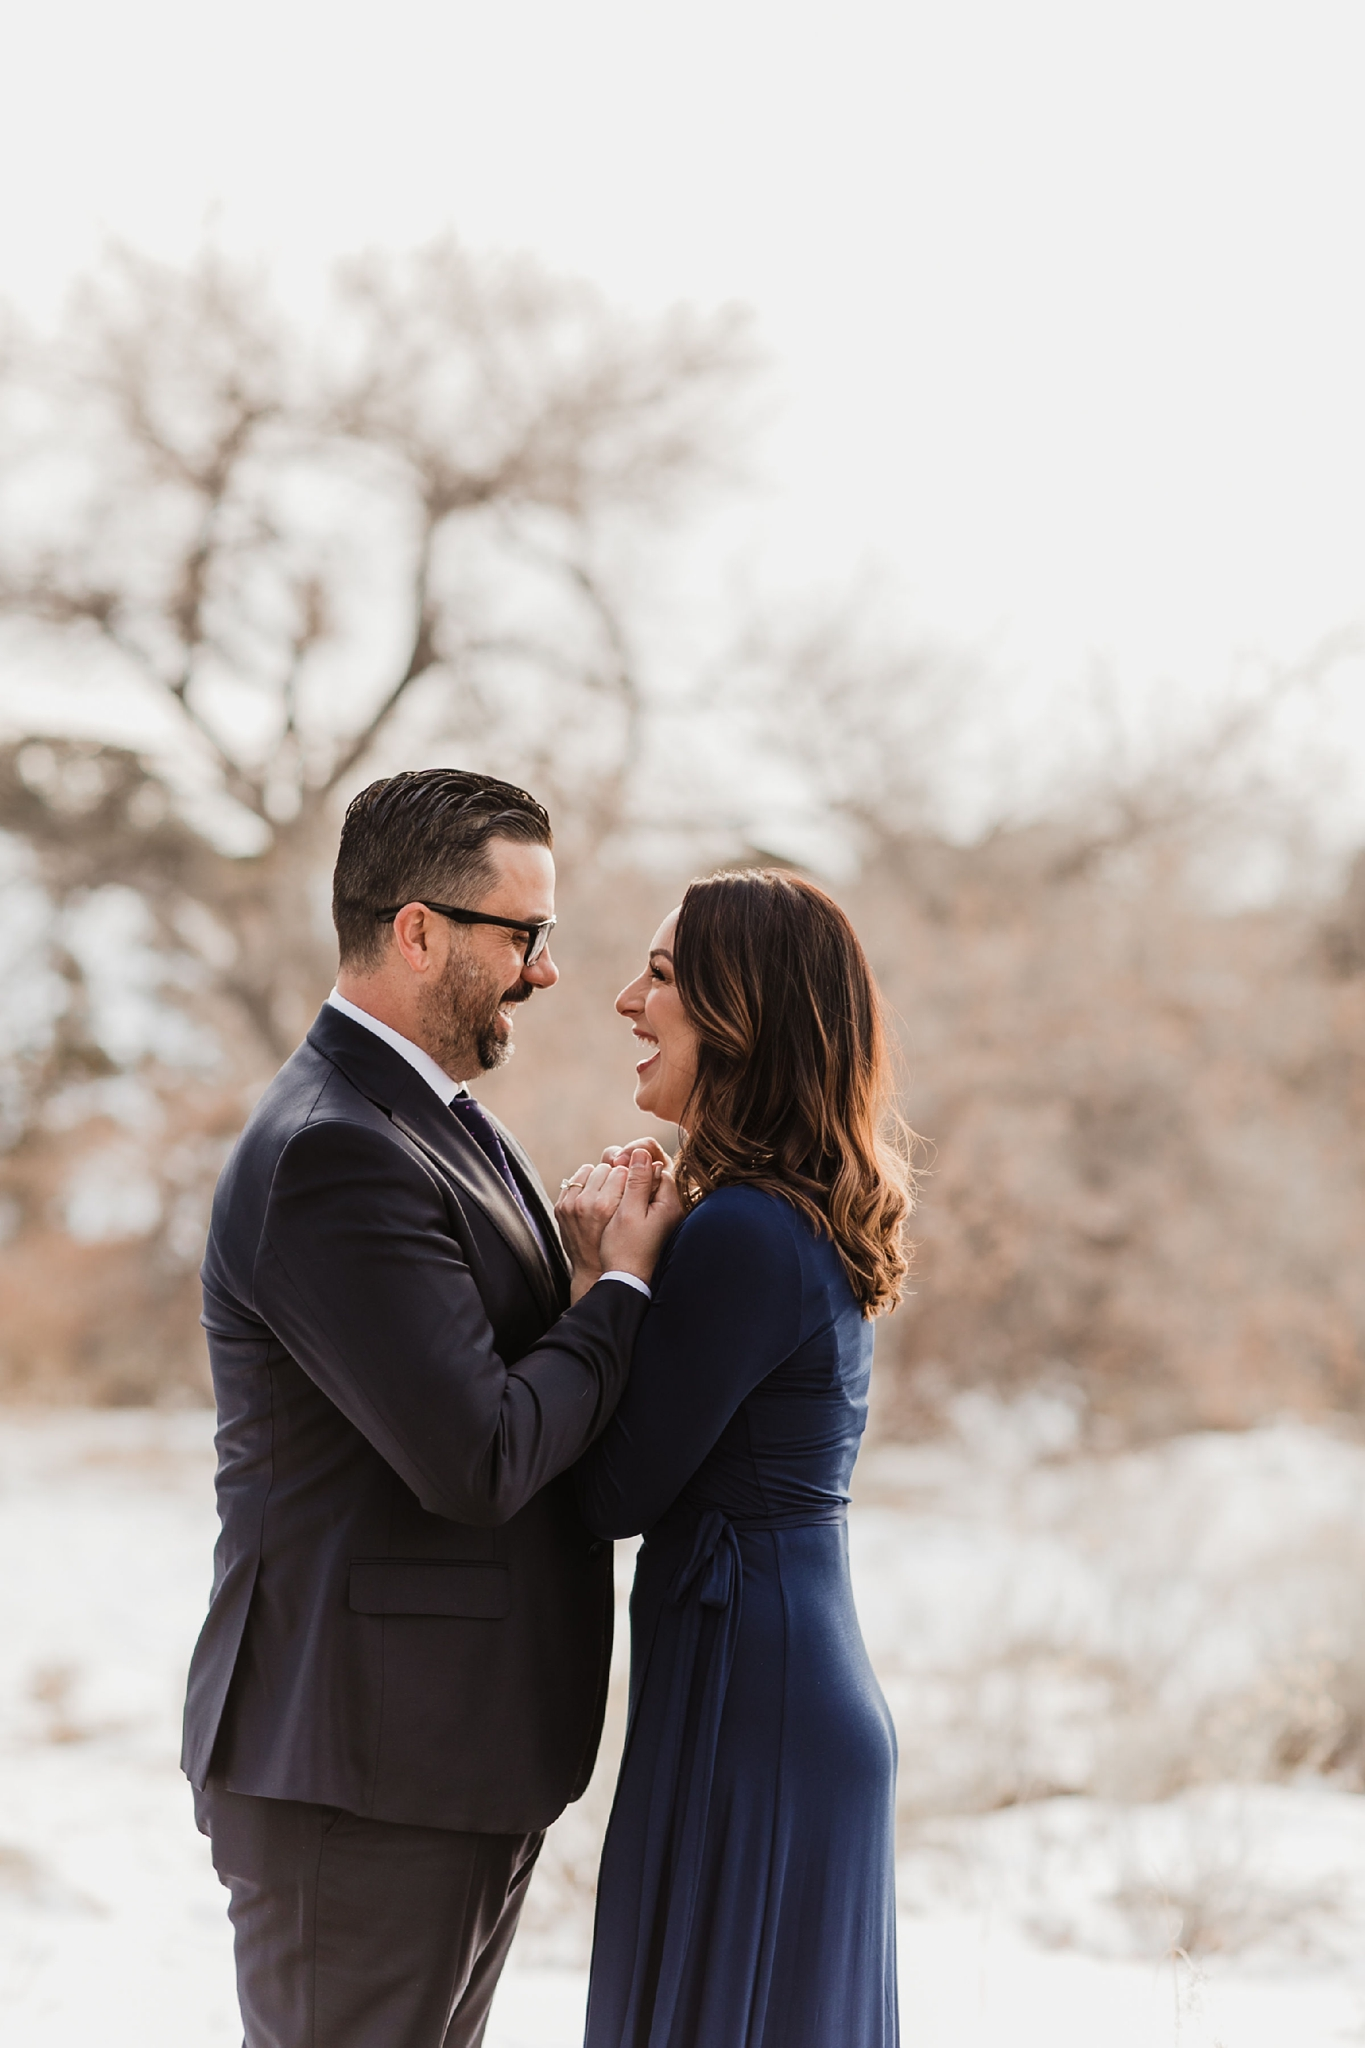 Alicia+lucia+photography+-+albuquerque+wedding+photographer+-+santa+fe+wedding+photography+-+new+mexico+wedding+photographer+-+new+mexico+wedding+-+engagement+-+winter+engagement+-+albuquerque+engagement_0005.jpg